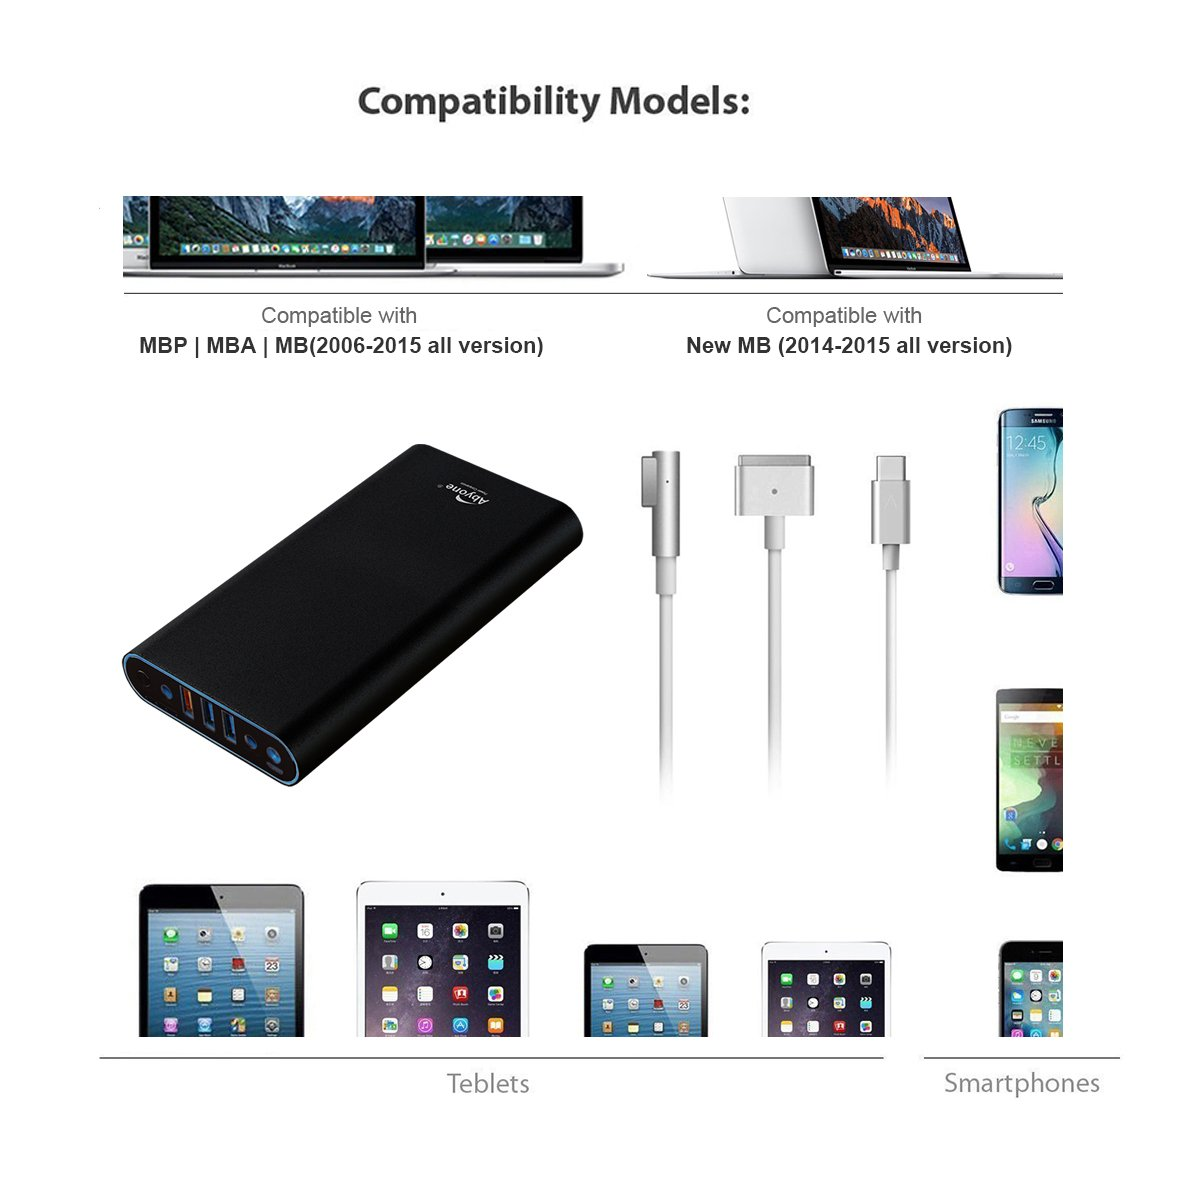 Atabyone MPC50B 50000mAh 6Ports Portable Charger Power Bank for compatible with 2006 to 2015 Apple MacBook Pro MacBook Air MacBook; USB Ports Charge for New MacBook iPad iPhone Tablet or Smartphones by Abyone (Image #6)